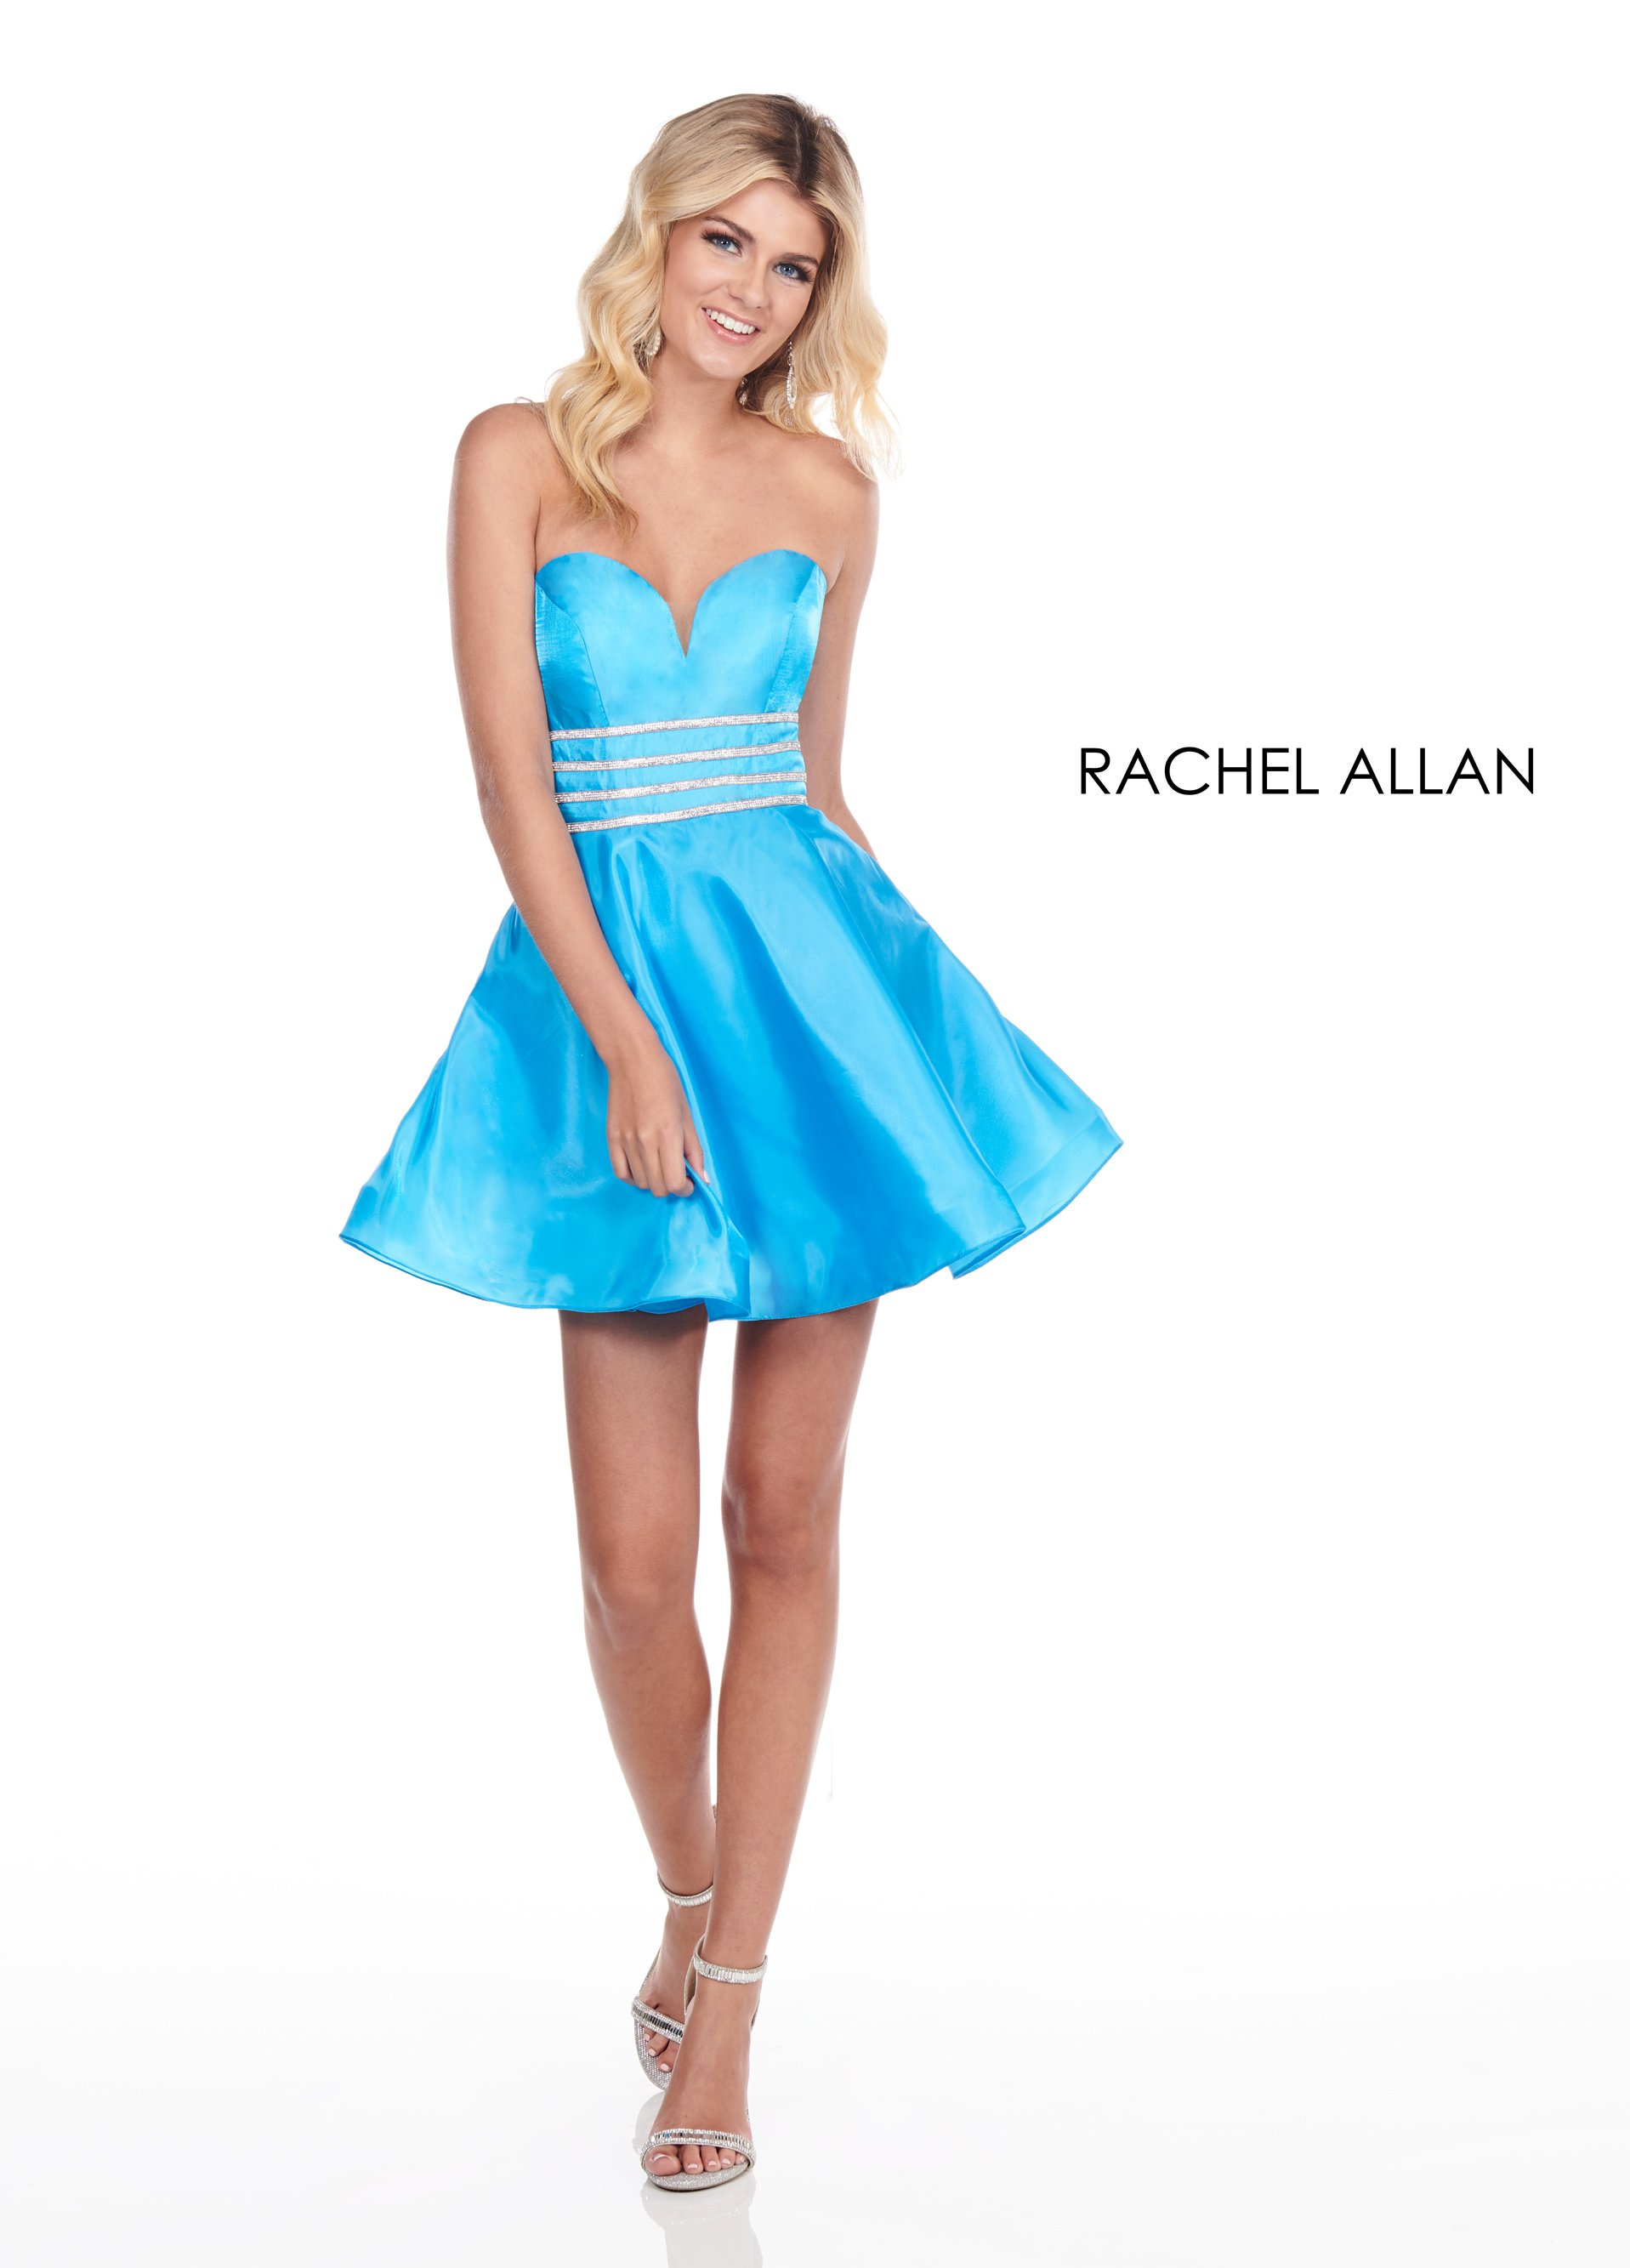 Sweetheart A-Line Homecoming Dresses in Blue Color